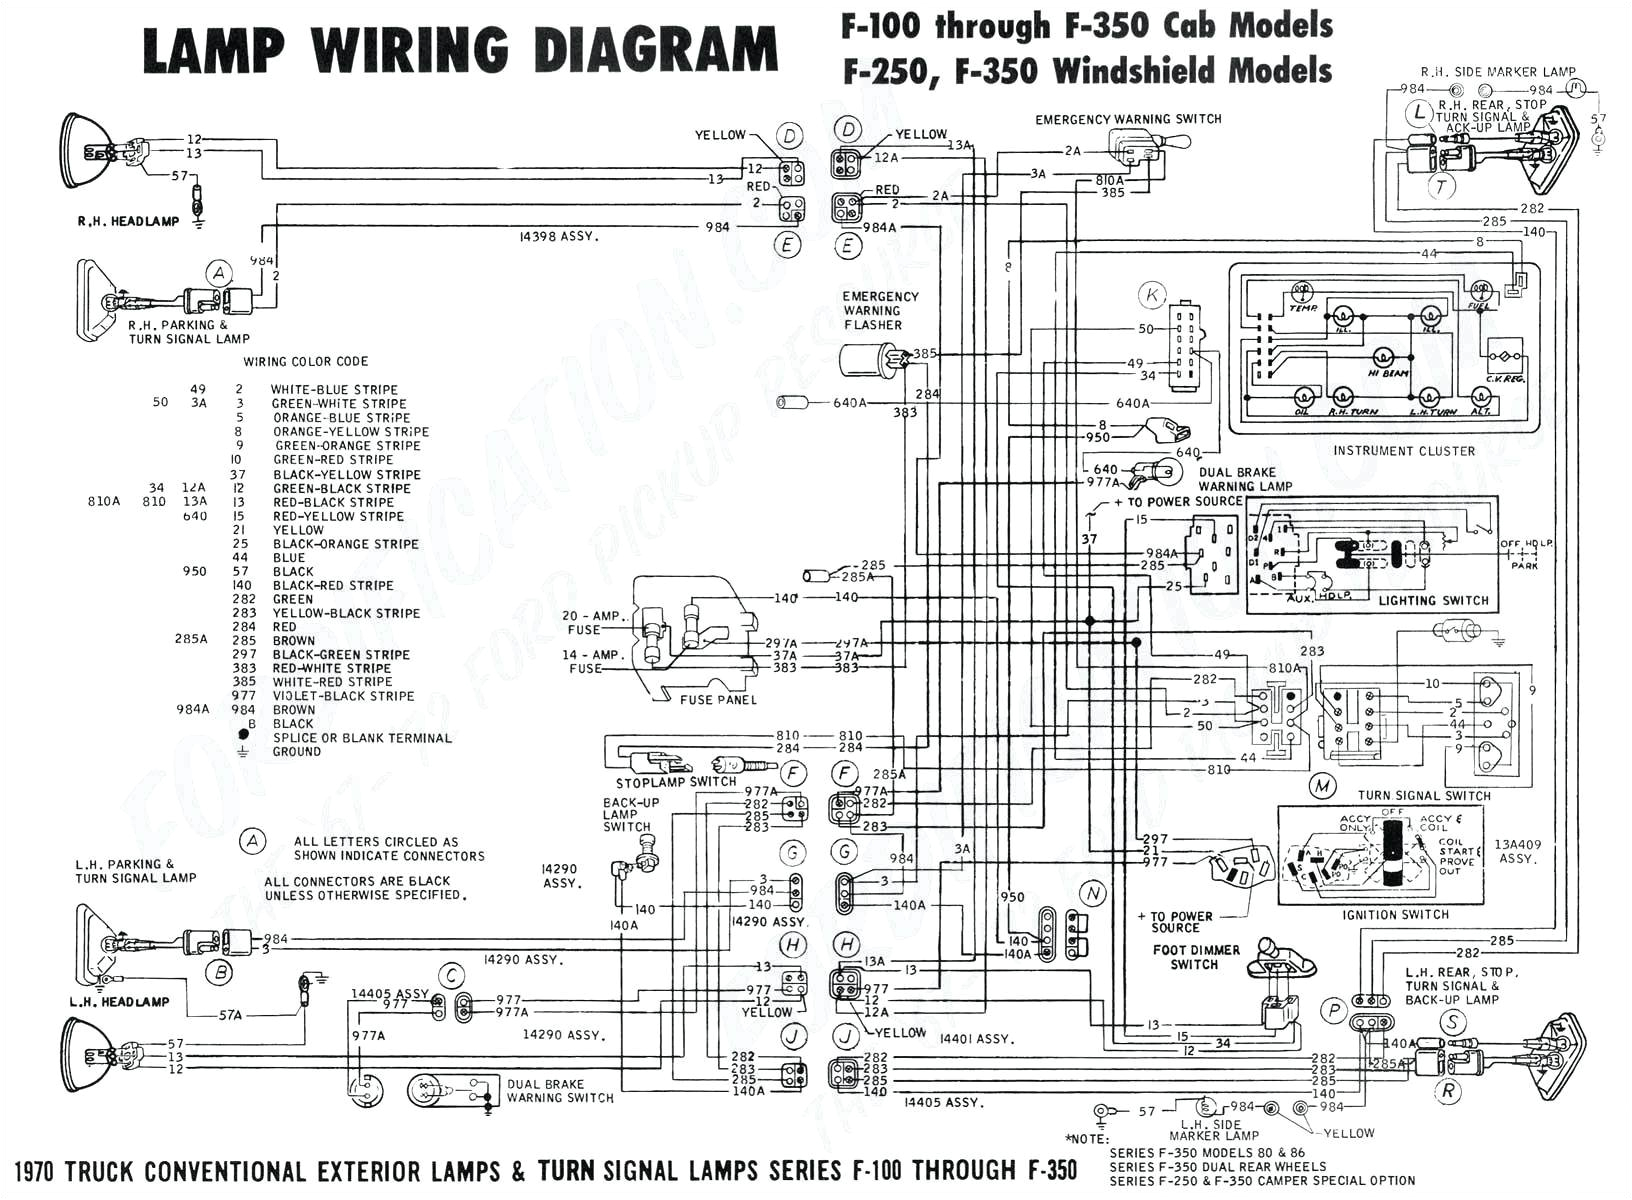 ford f150 new alternatorfuse located on the wiring harness going2005 dodge stratus fuse diagram wiring diagram